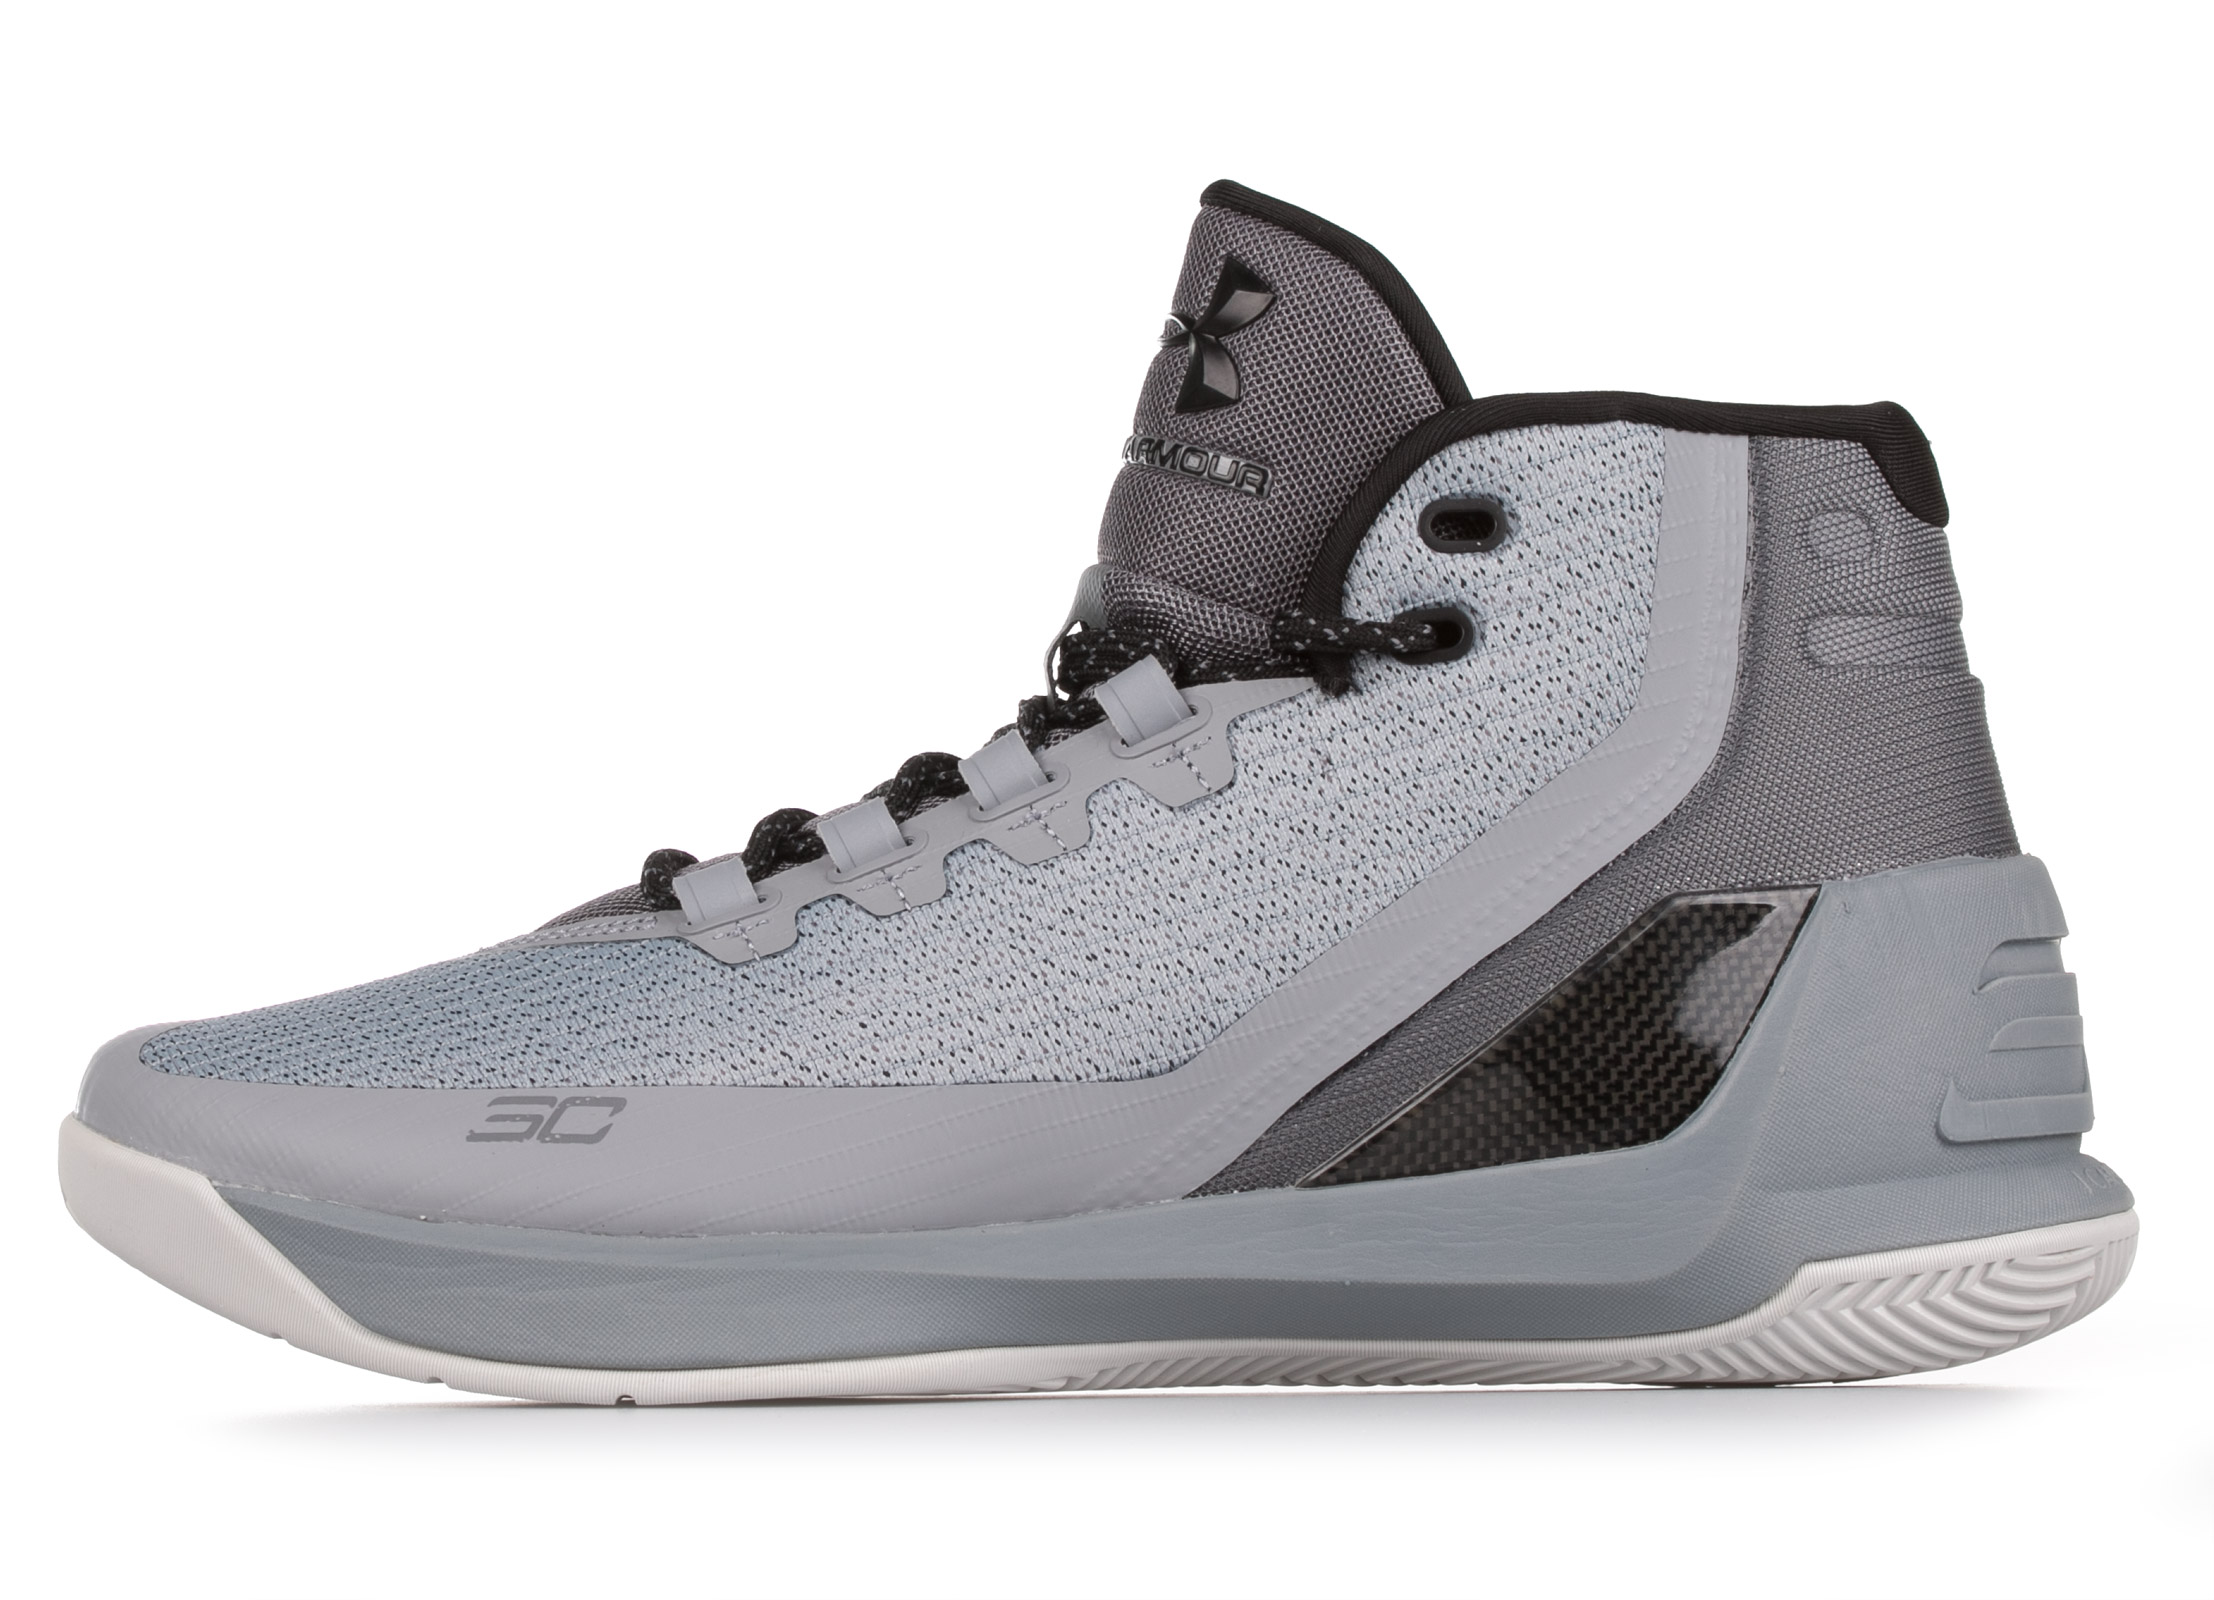 UNDER ARMOUR CURRY 3 1269279-035 Ανθρακί